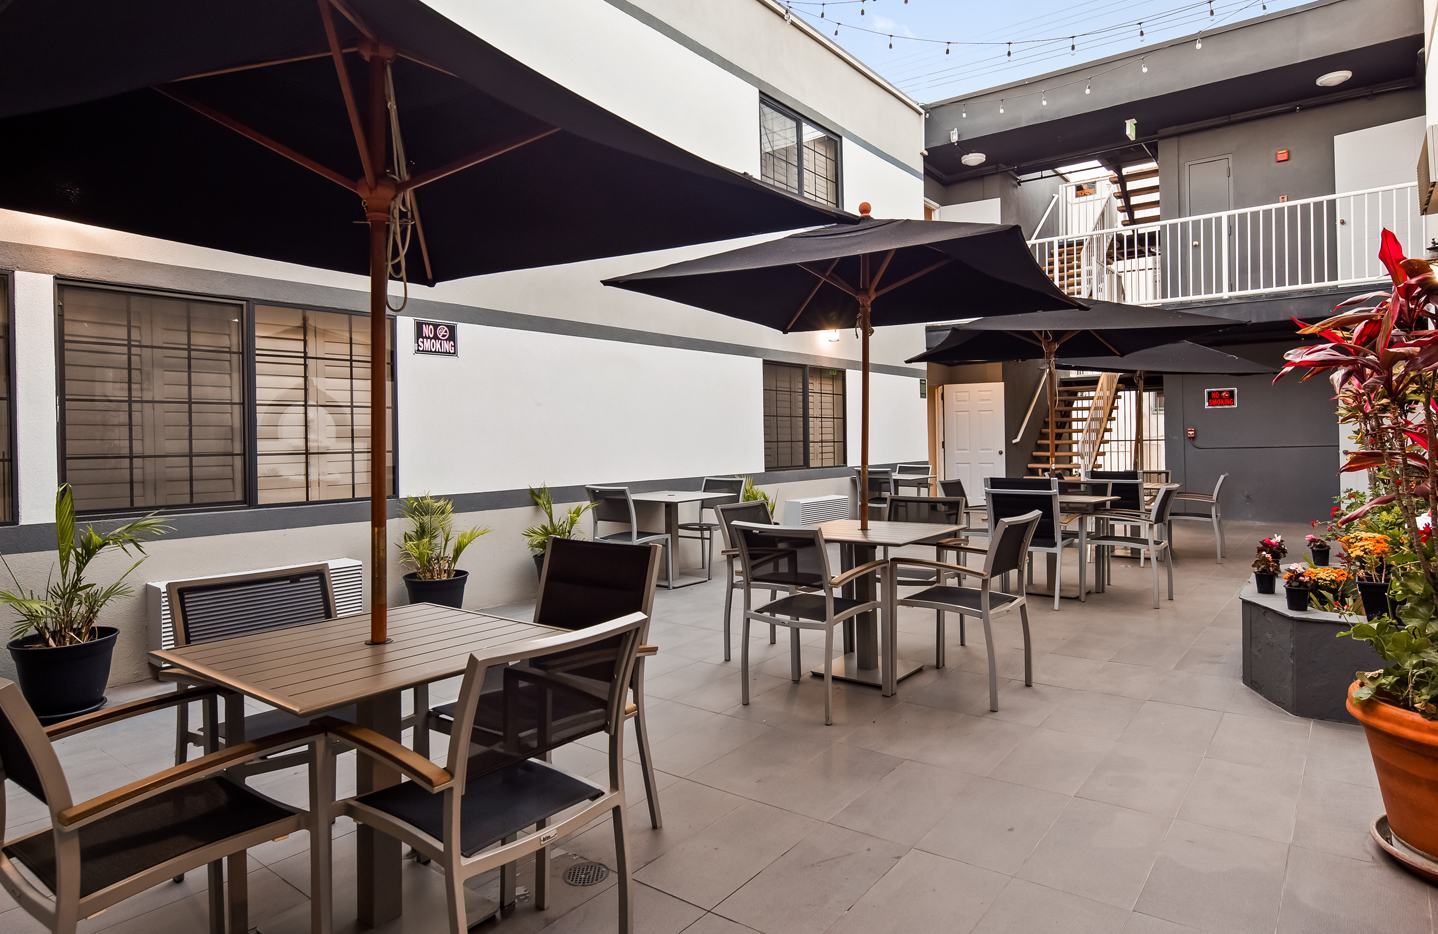 SureStay Hotel Los Angeles - Breakfast Seating Area